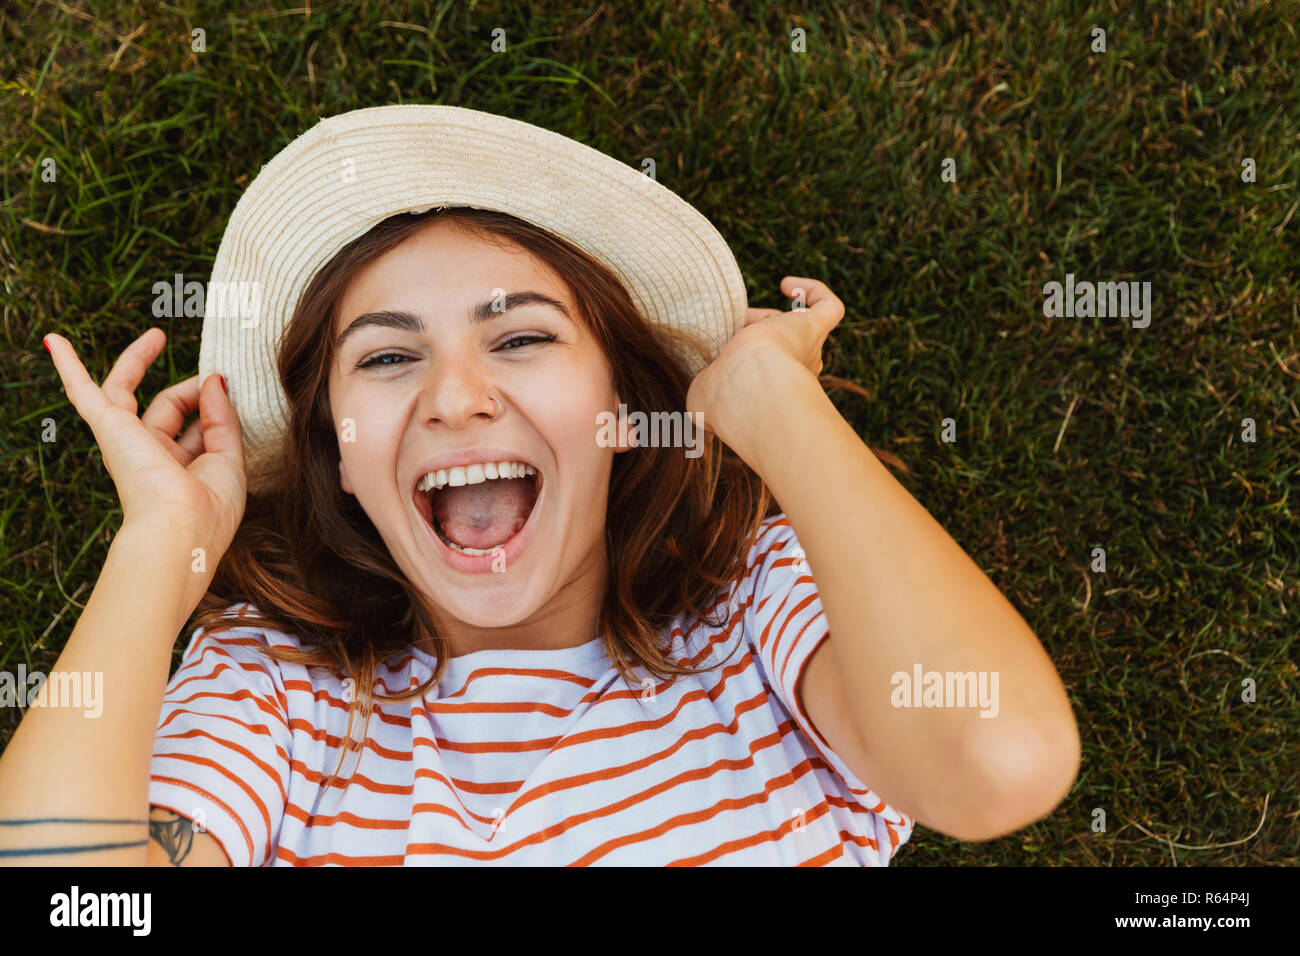 Top view of a joyful young girl in summer hat laying on a grass, grimacing - Stock Image